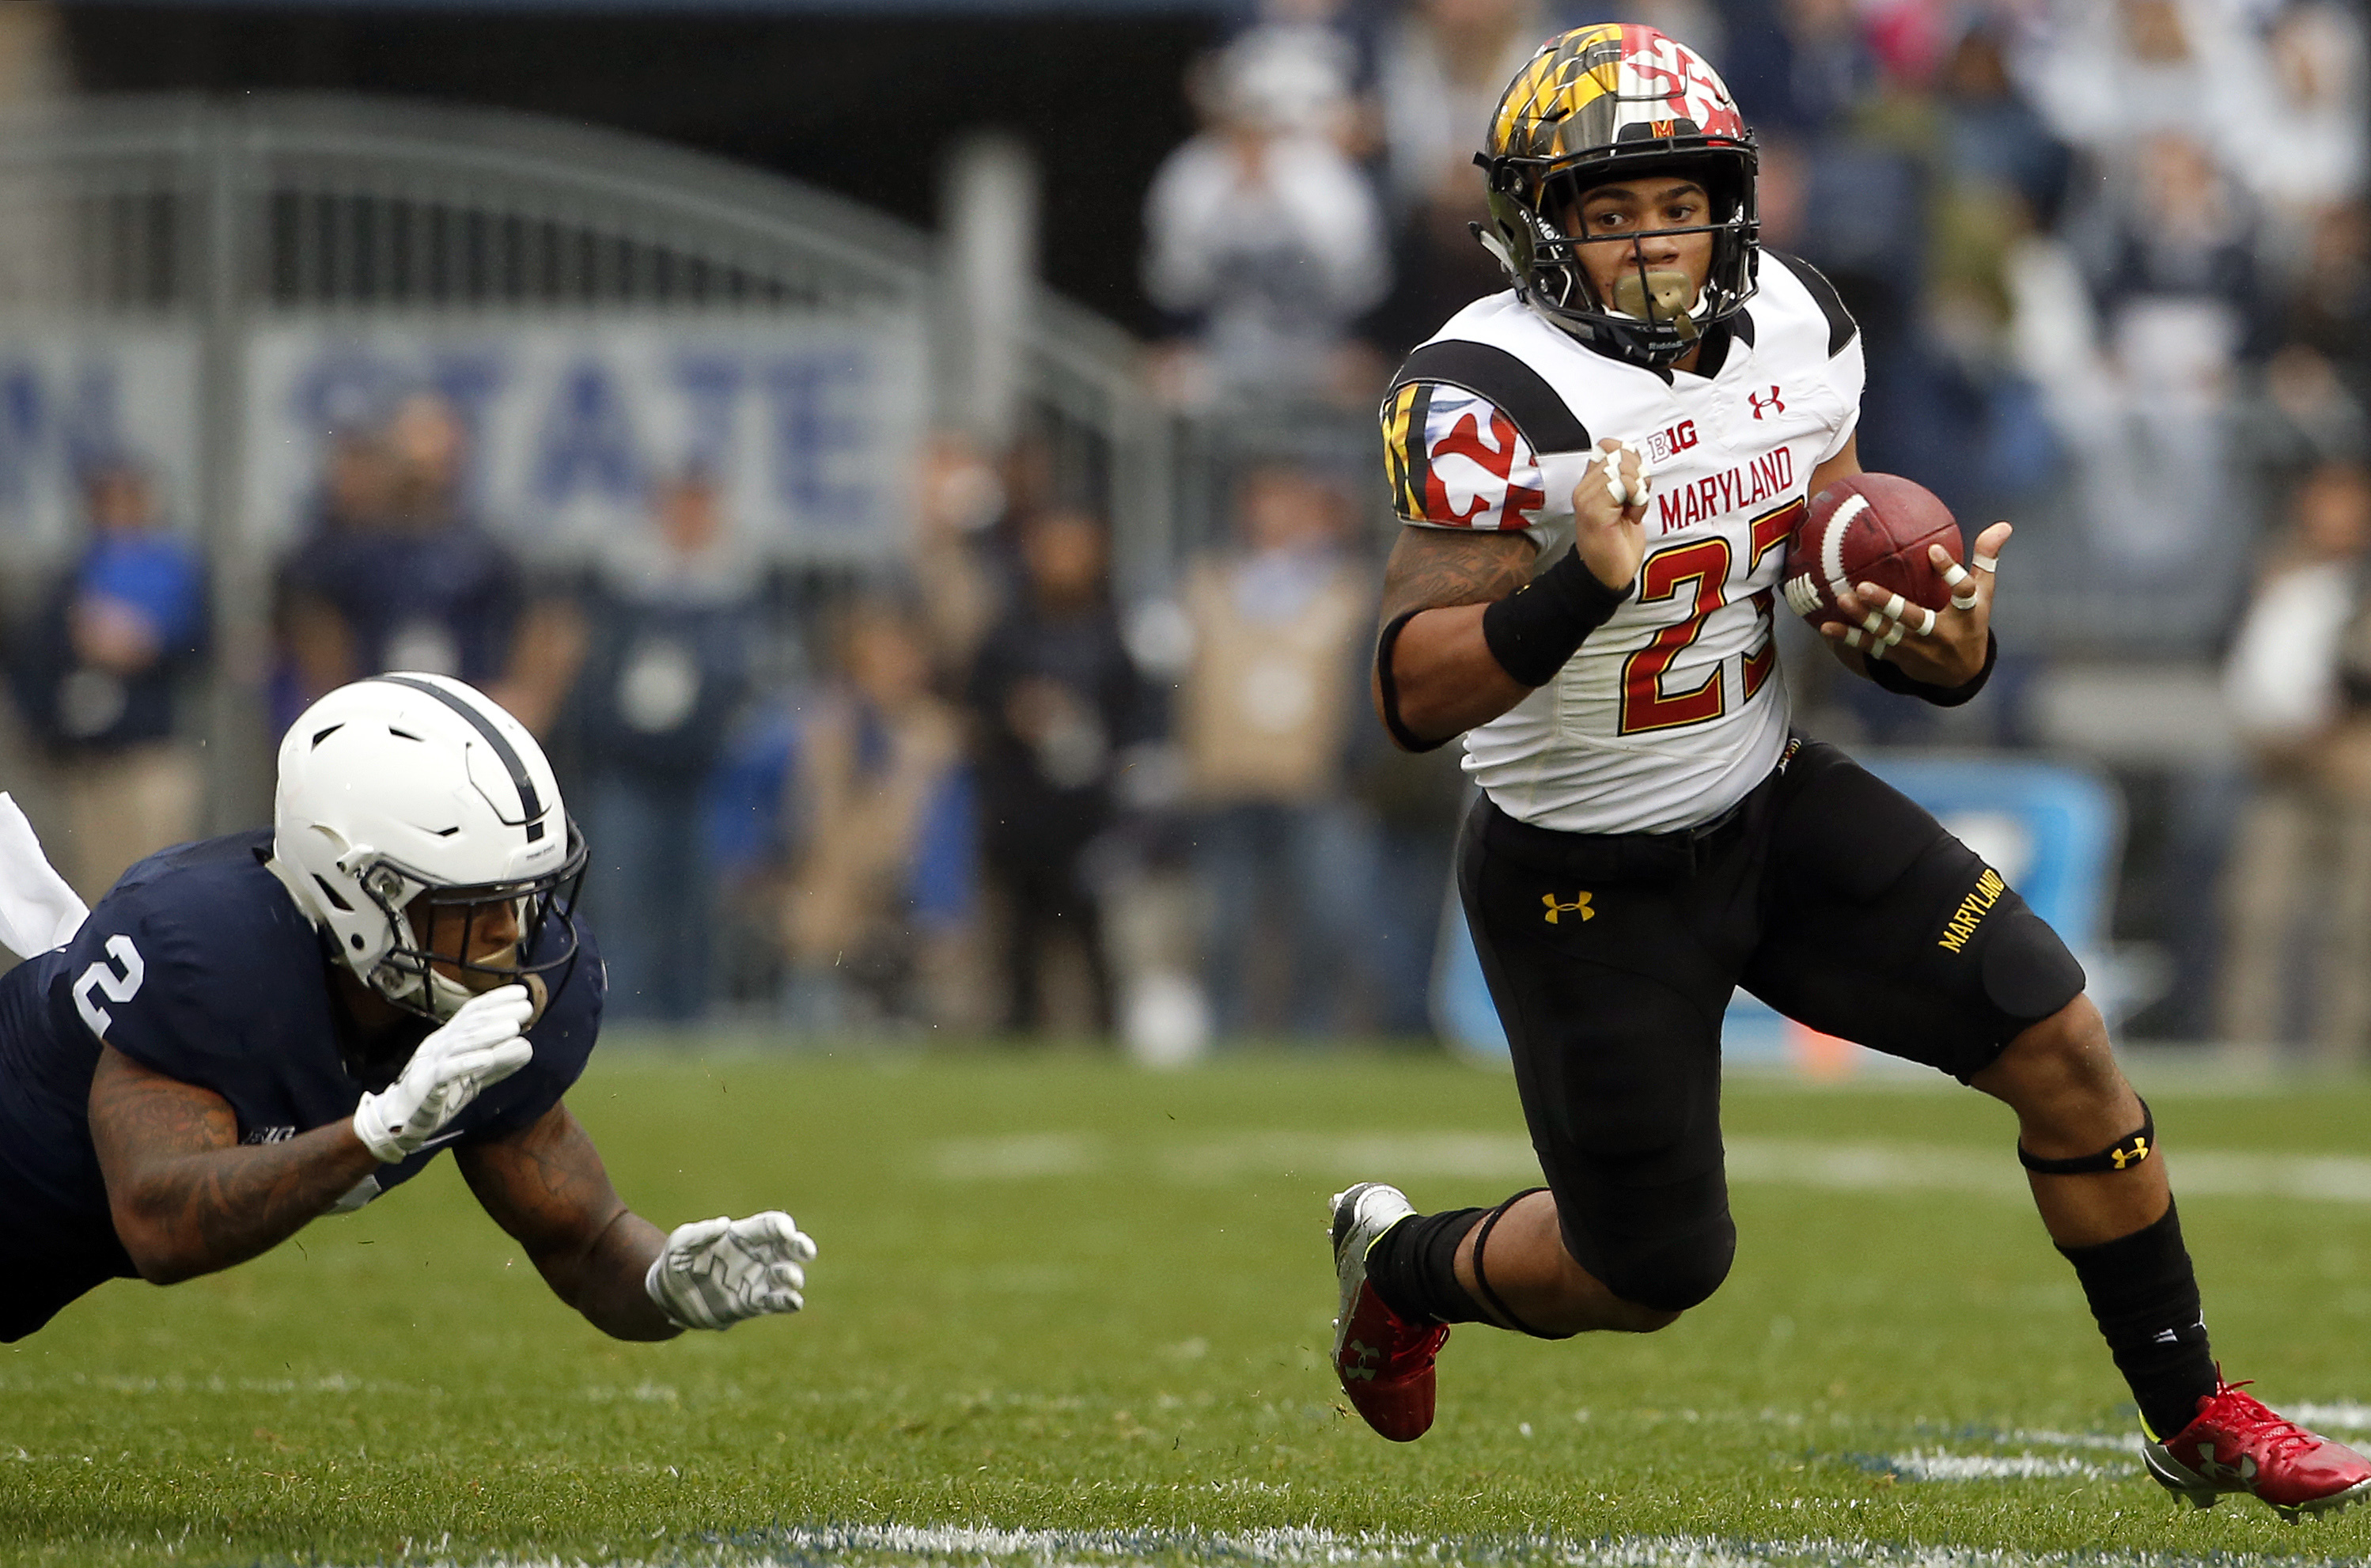 Maryland's Lorenzo Harrison (23) gets past Penn States Marcus Allen (2) during the first half of an NCAA college football game in State College, Pa., Saturday, Oct. 8, 2016. Penn State won the game 38-14. (AP Photo/Chris Knight)